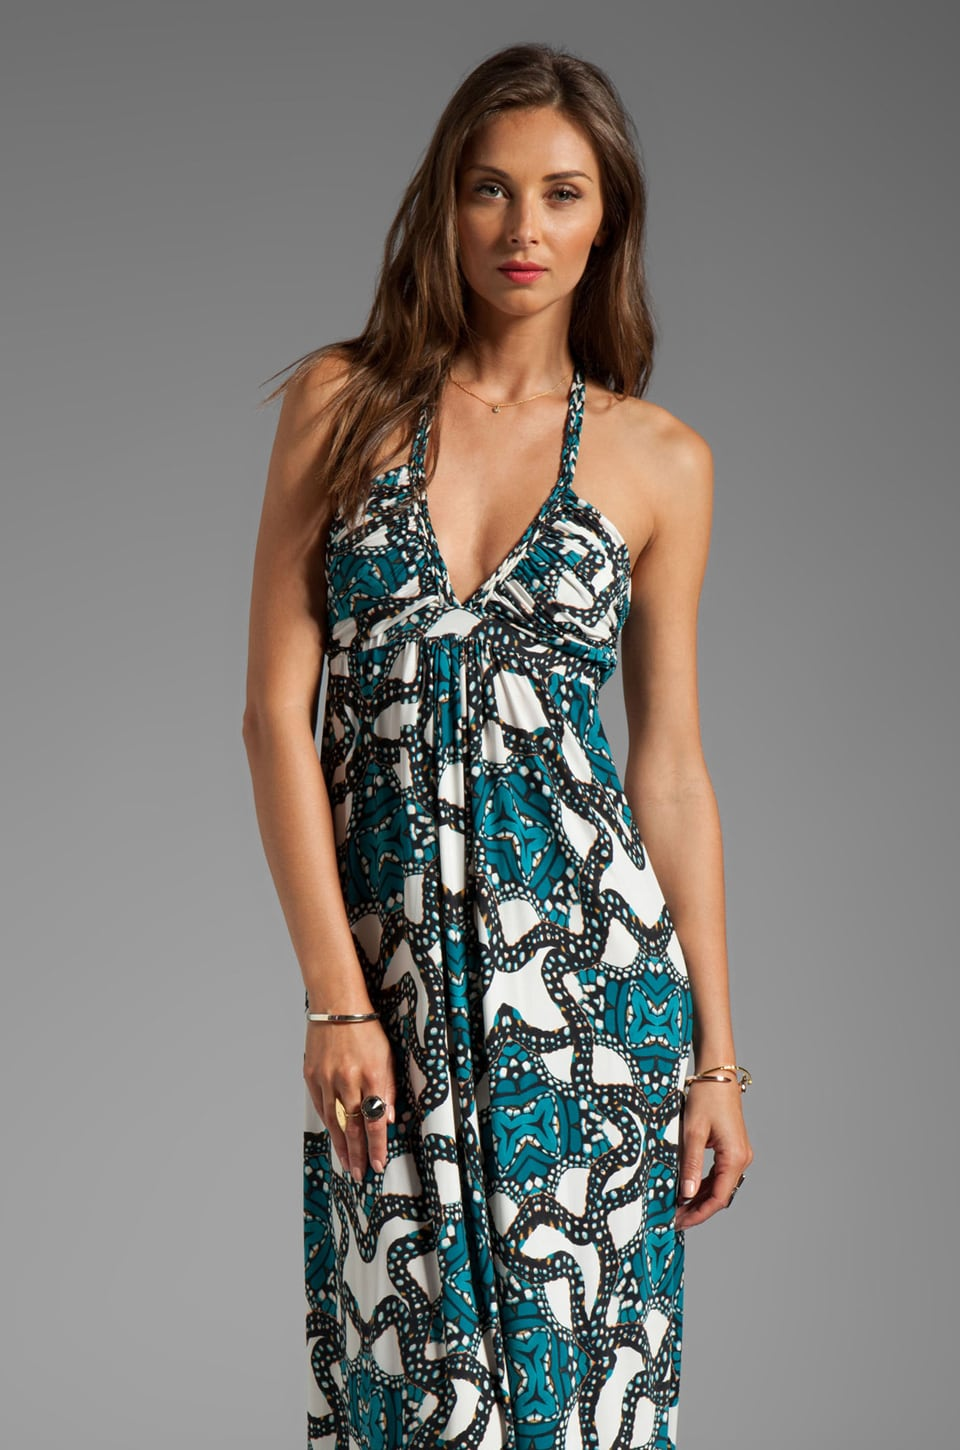 T-Bags LosAngeles Deep V Maxi Dress in Oceanic